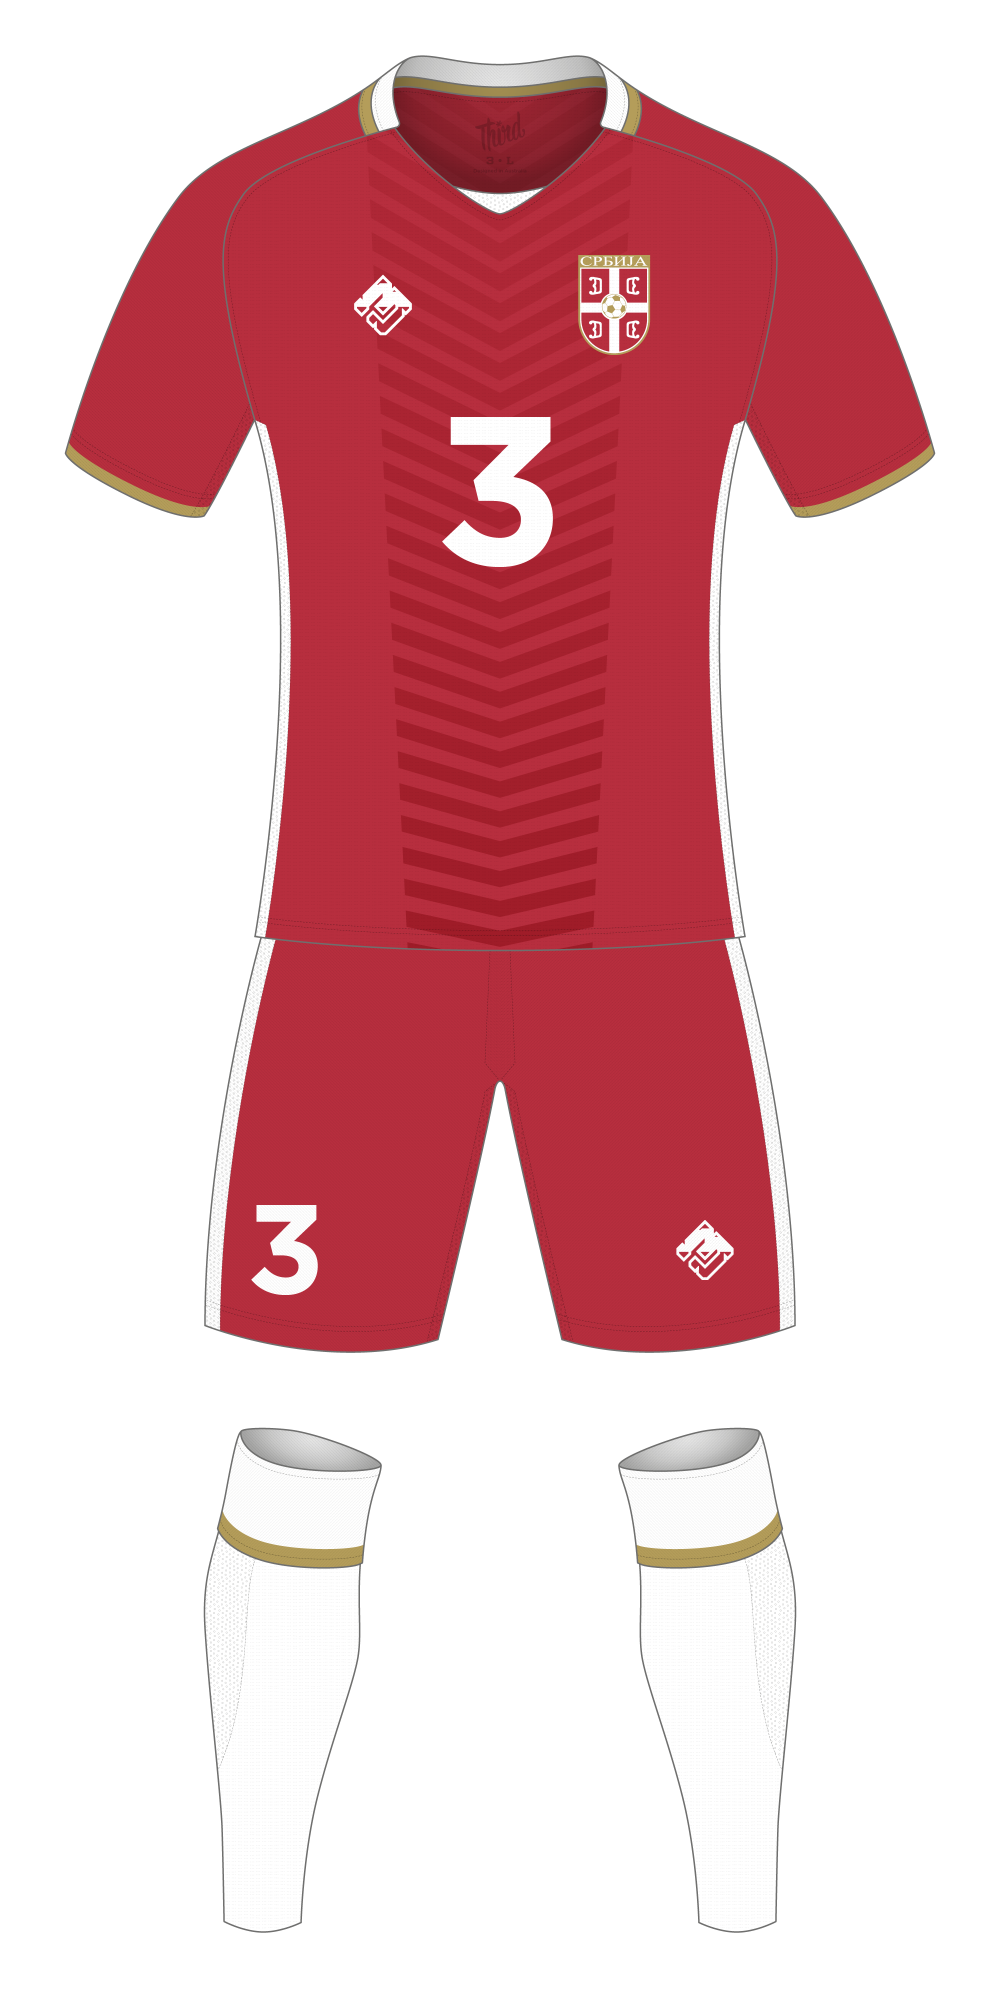 Serbia World Cup 2018 concept